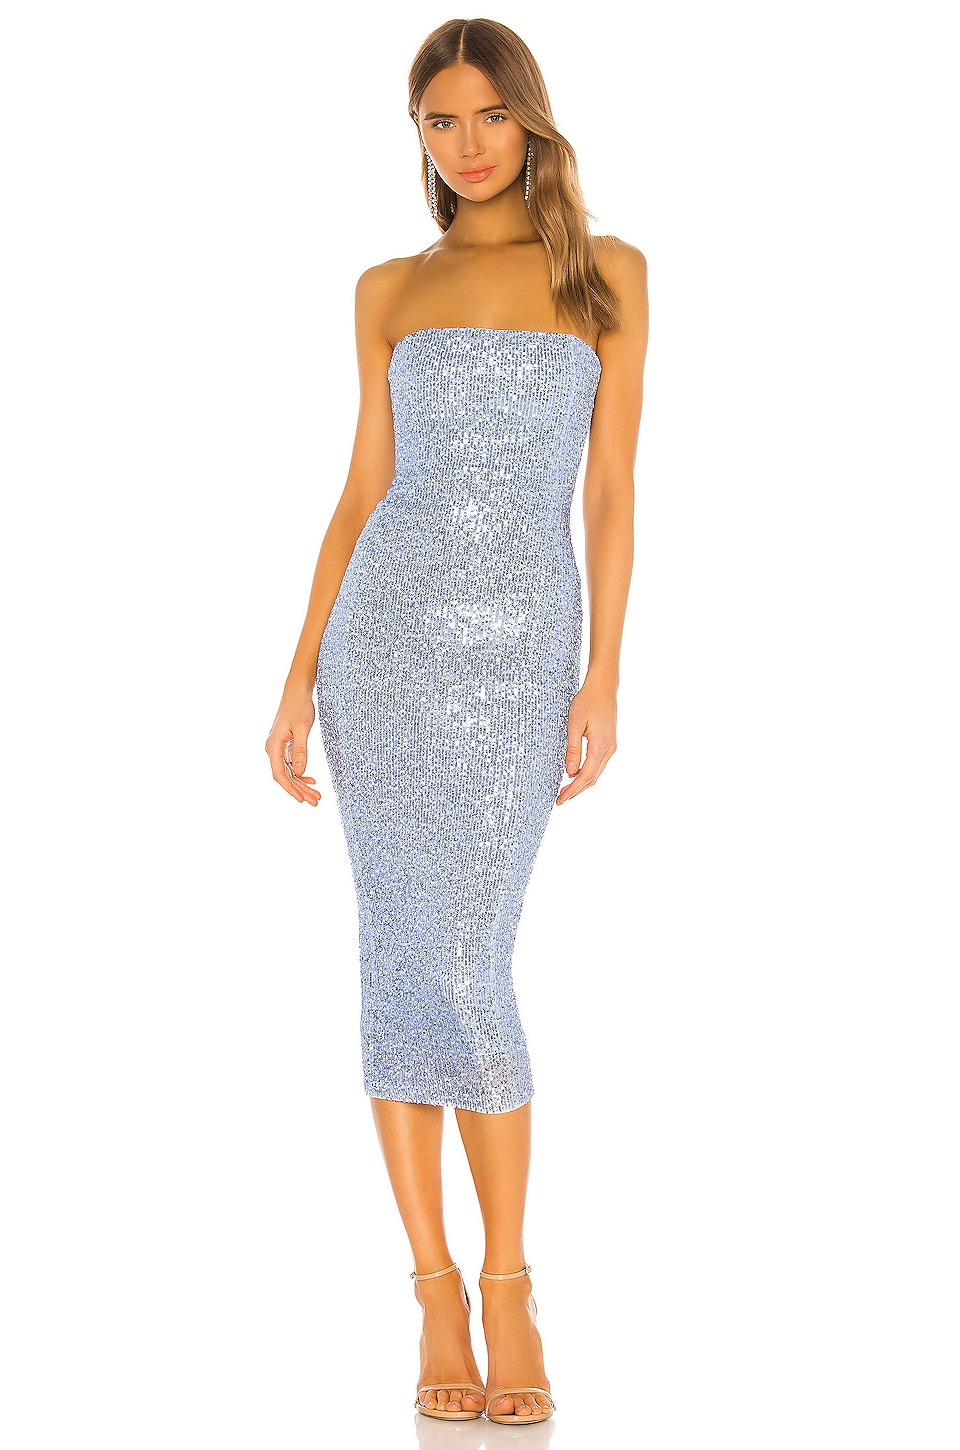 Nookie X Revolve Fantasy Midi Dress In Light Blue Revolve Buy luxury fashion at outlet prices at the outnet. nookie